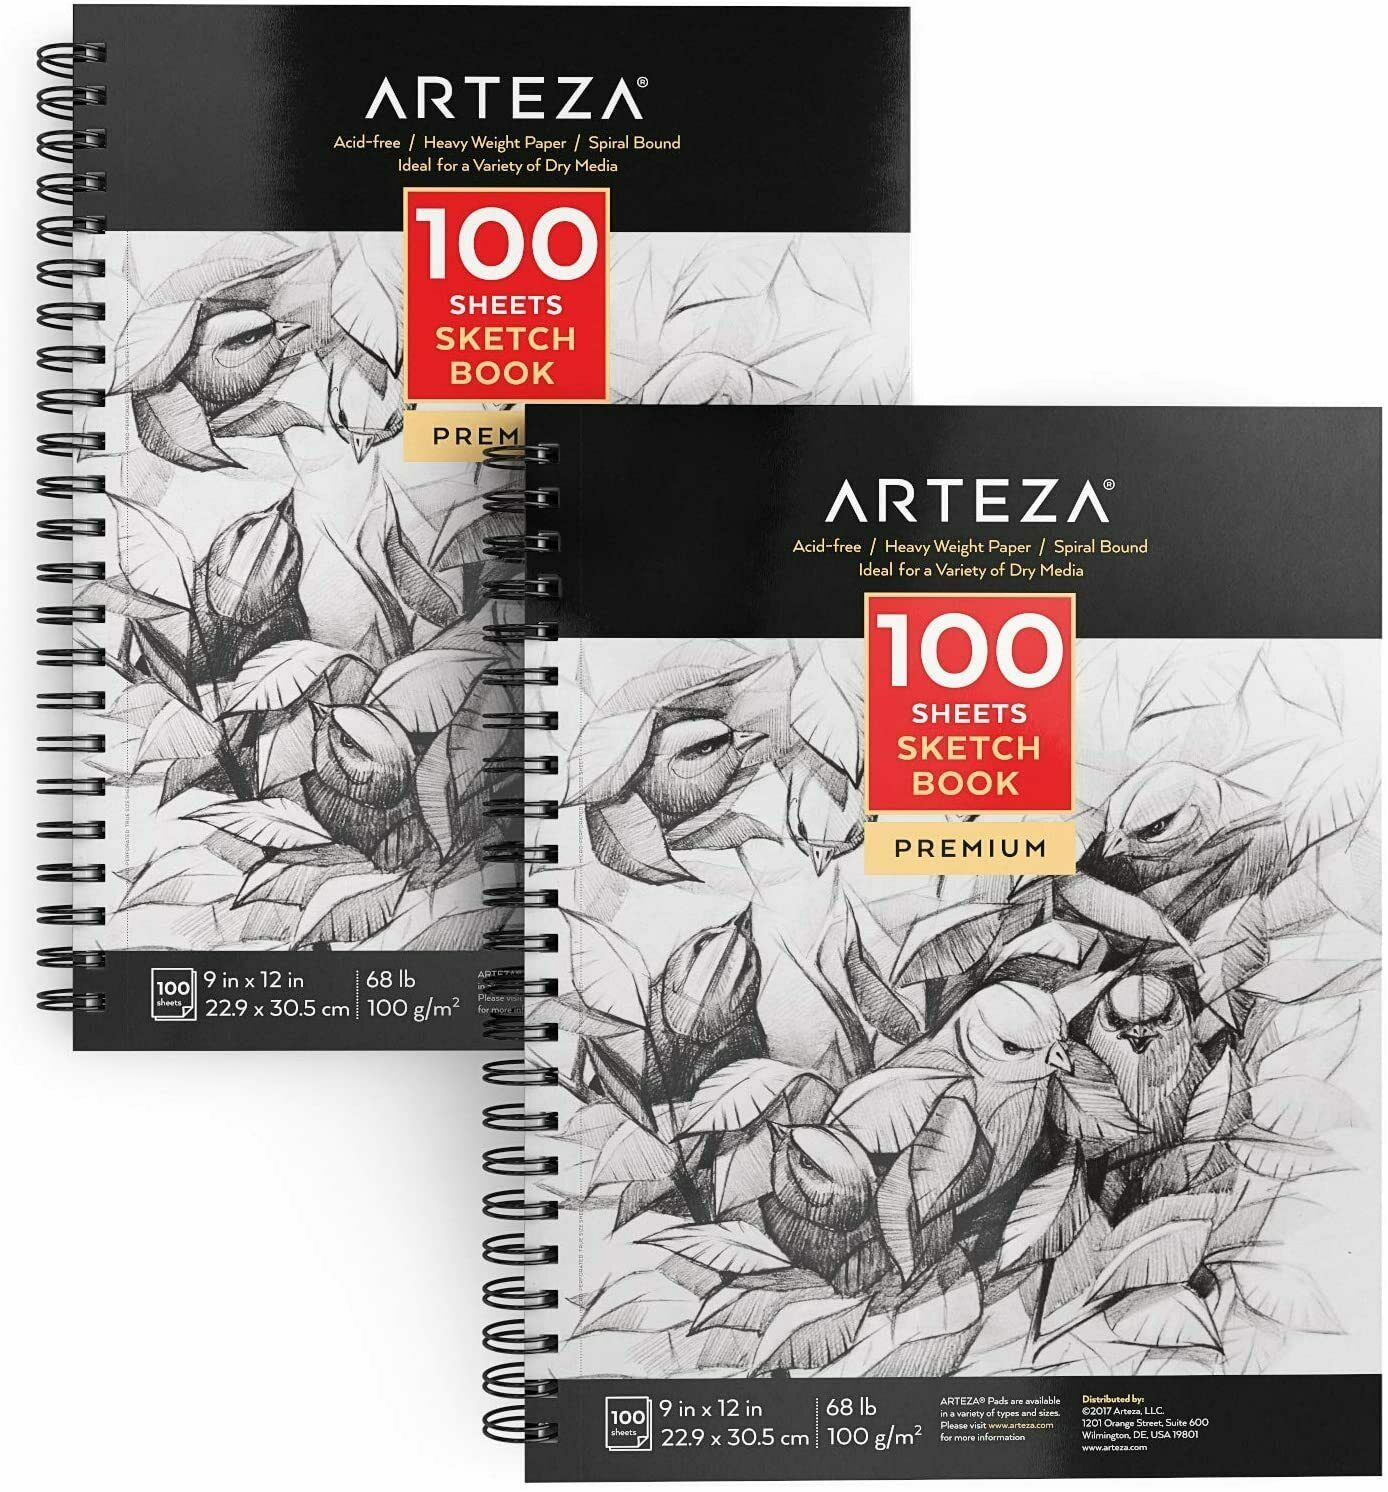 8.5 x 11 in, 60 Sheets, 3-Pack A4 Sketch Paper Pads for Artists and Painters